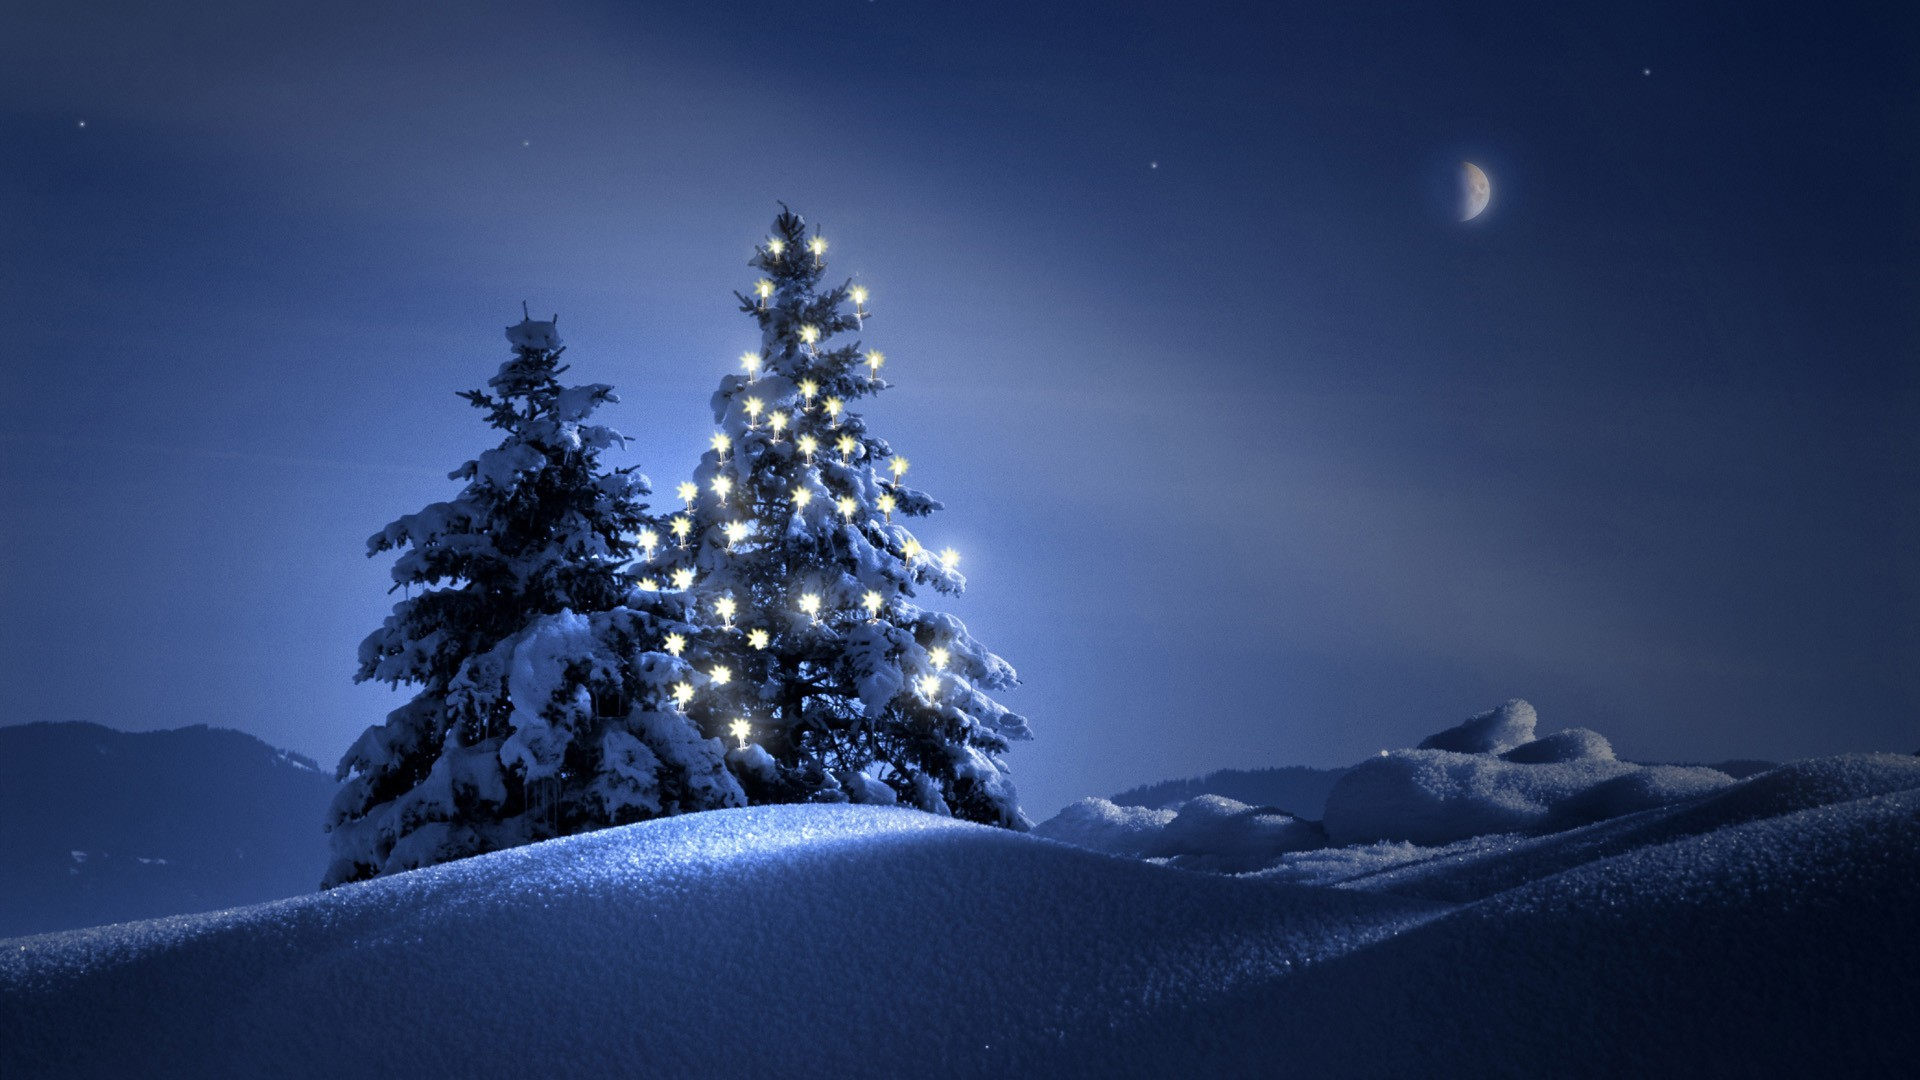 Res: 1920x1080, Christmas Trees Wallpaper Backgrounds